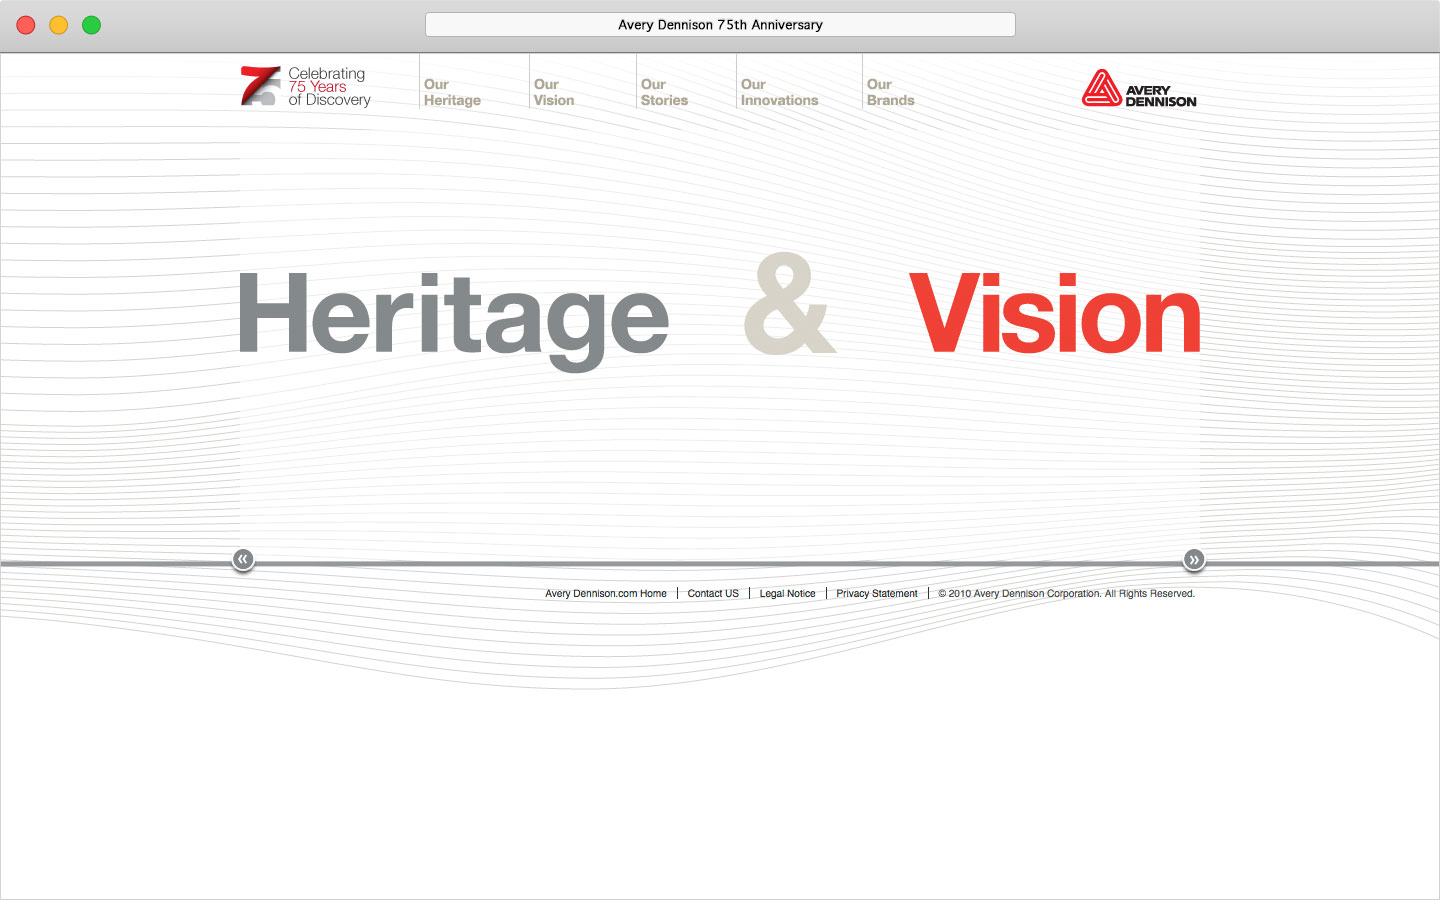 Avery Dennison 75th anniversary microsite homepage